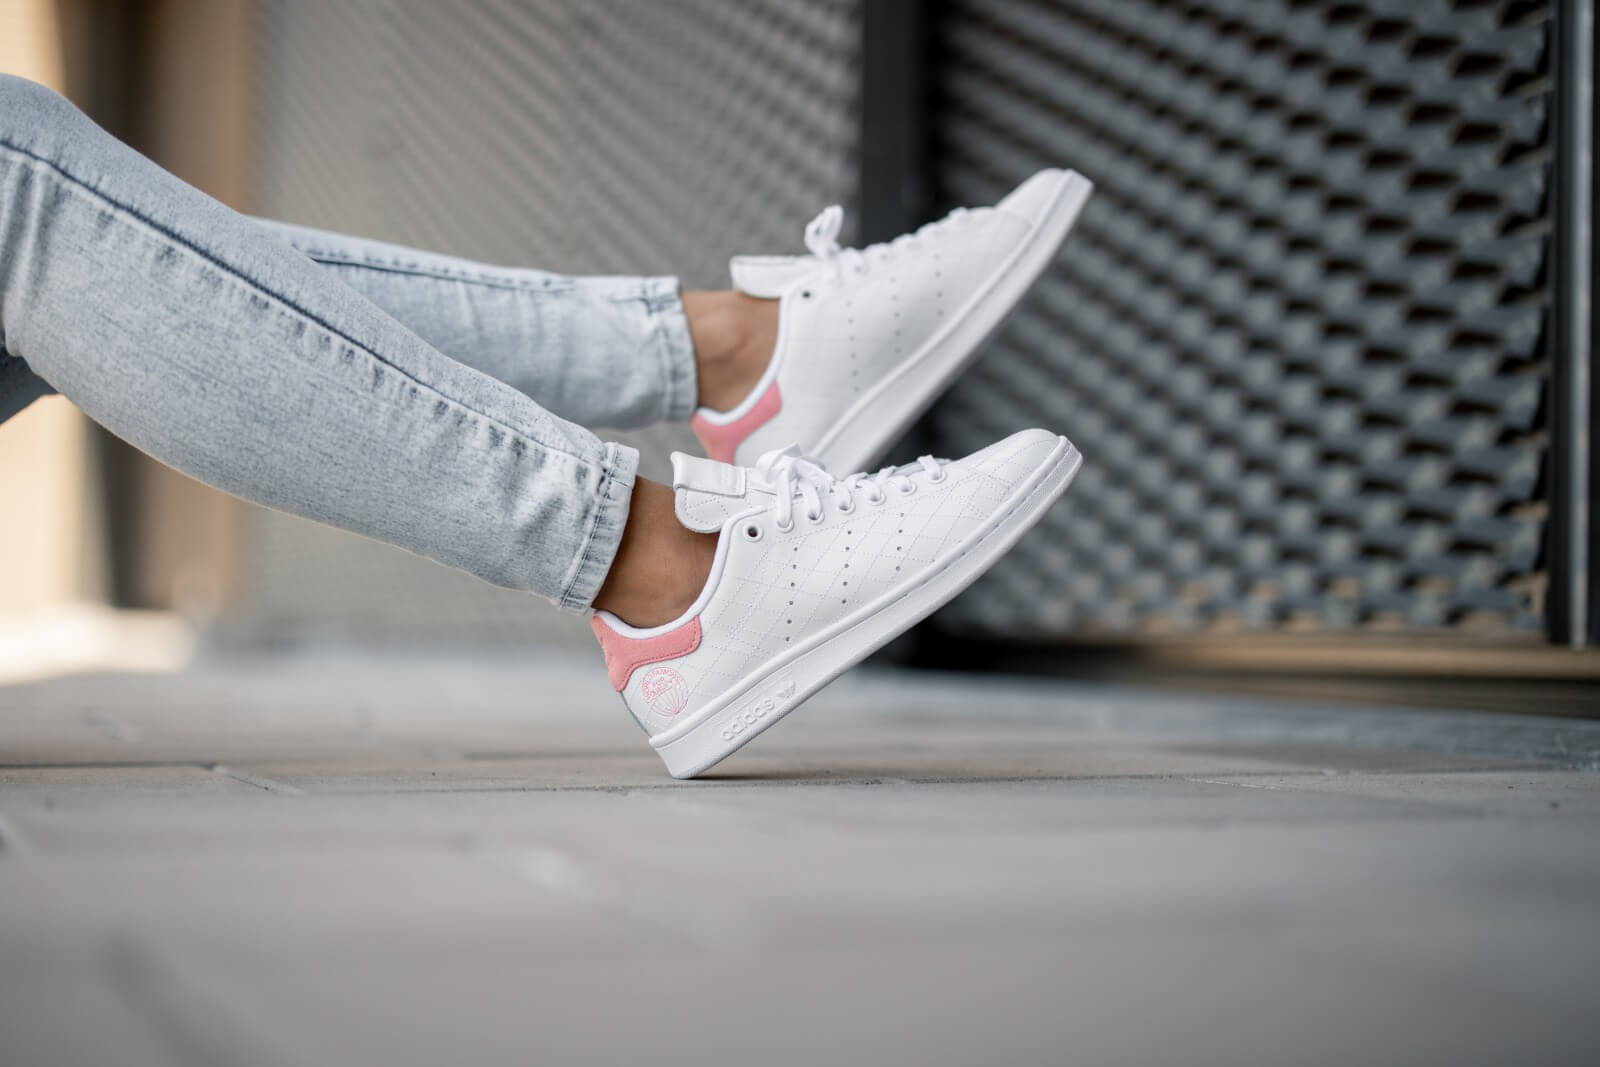 Adidas Women's Stan Smith Footwear White/Glow Pink